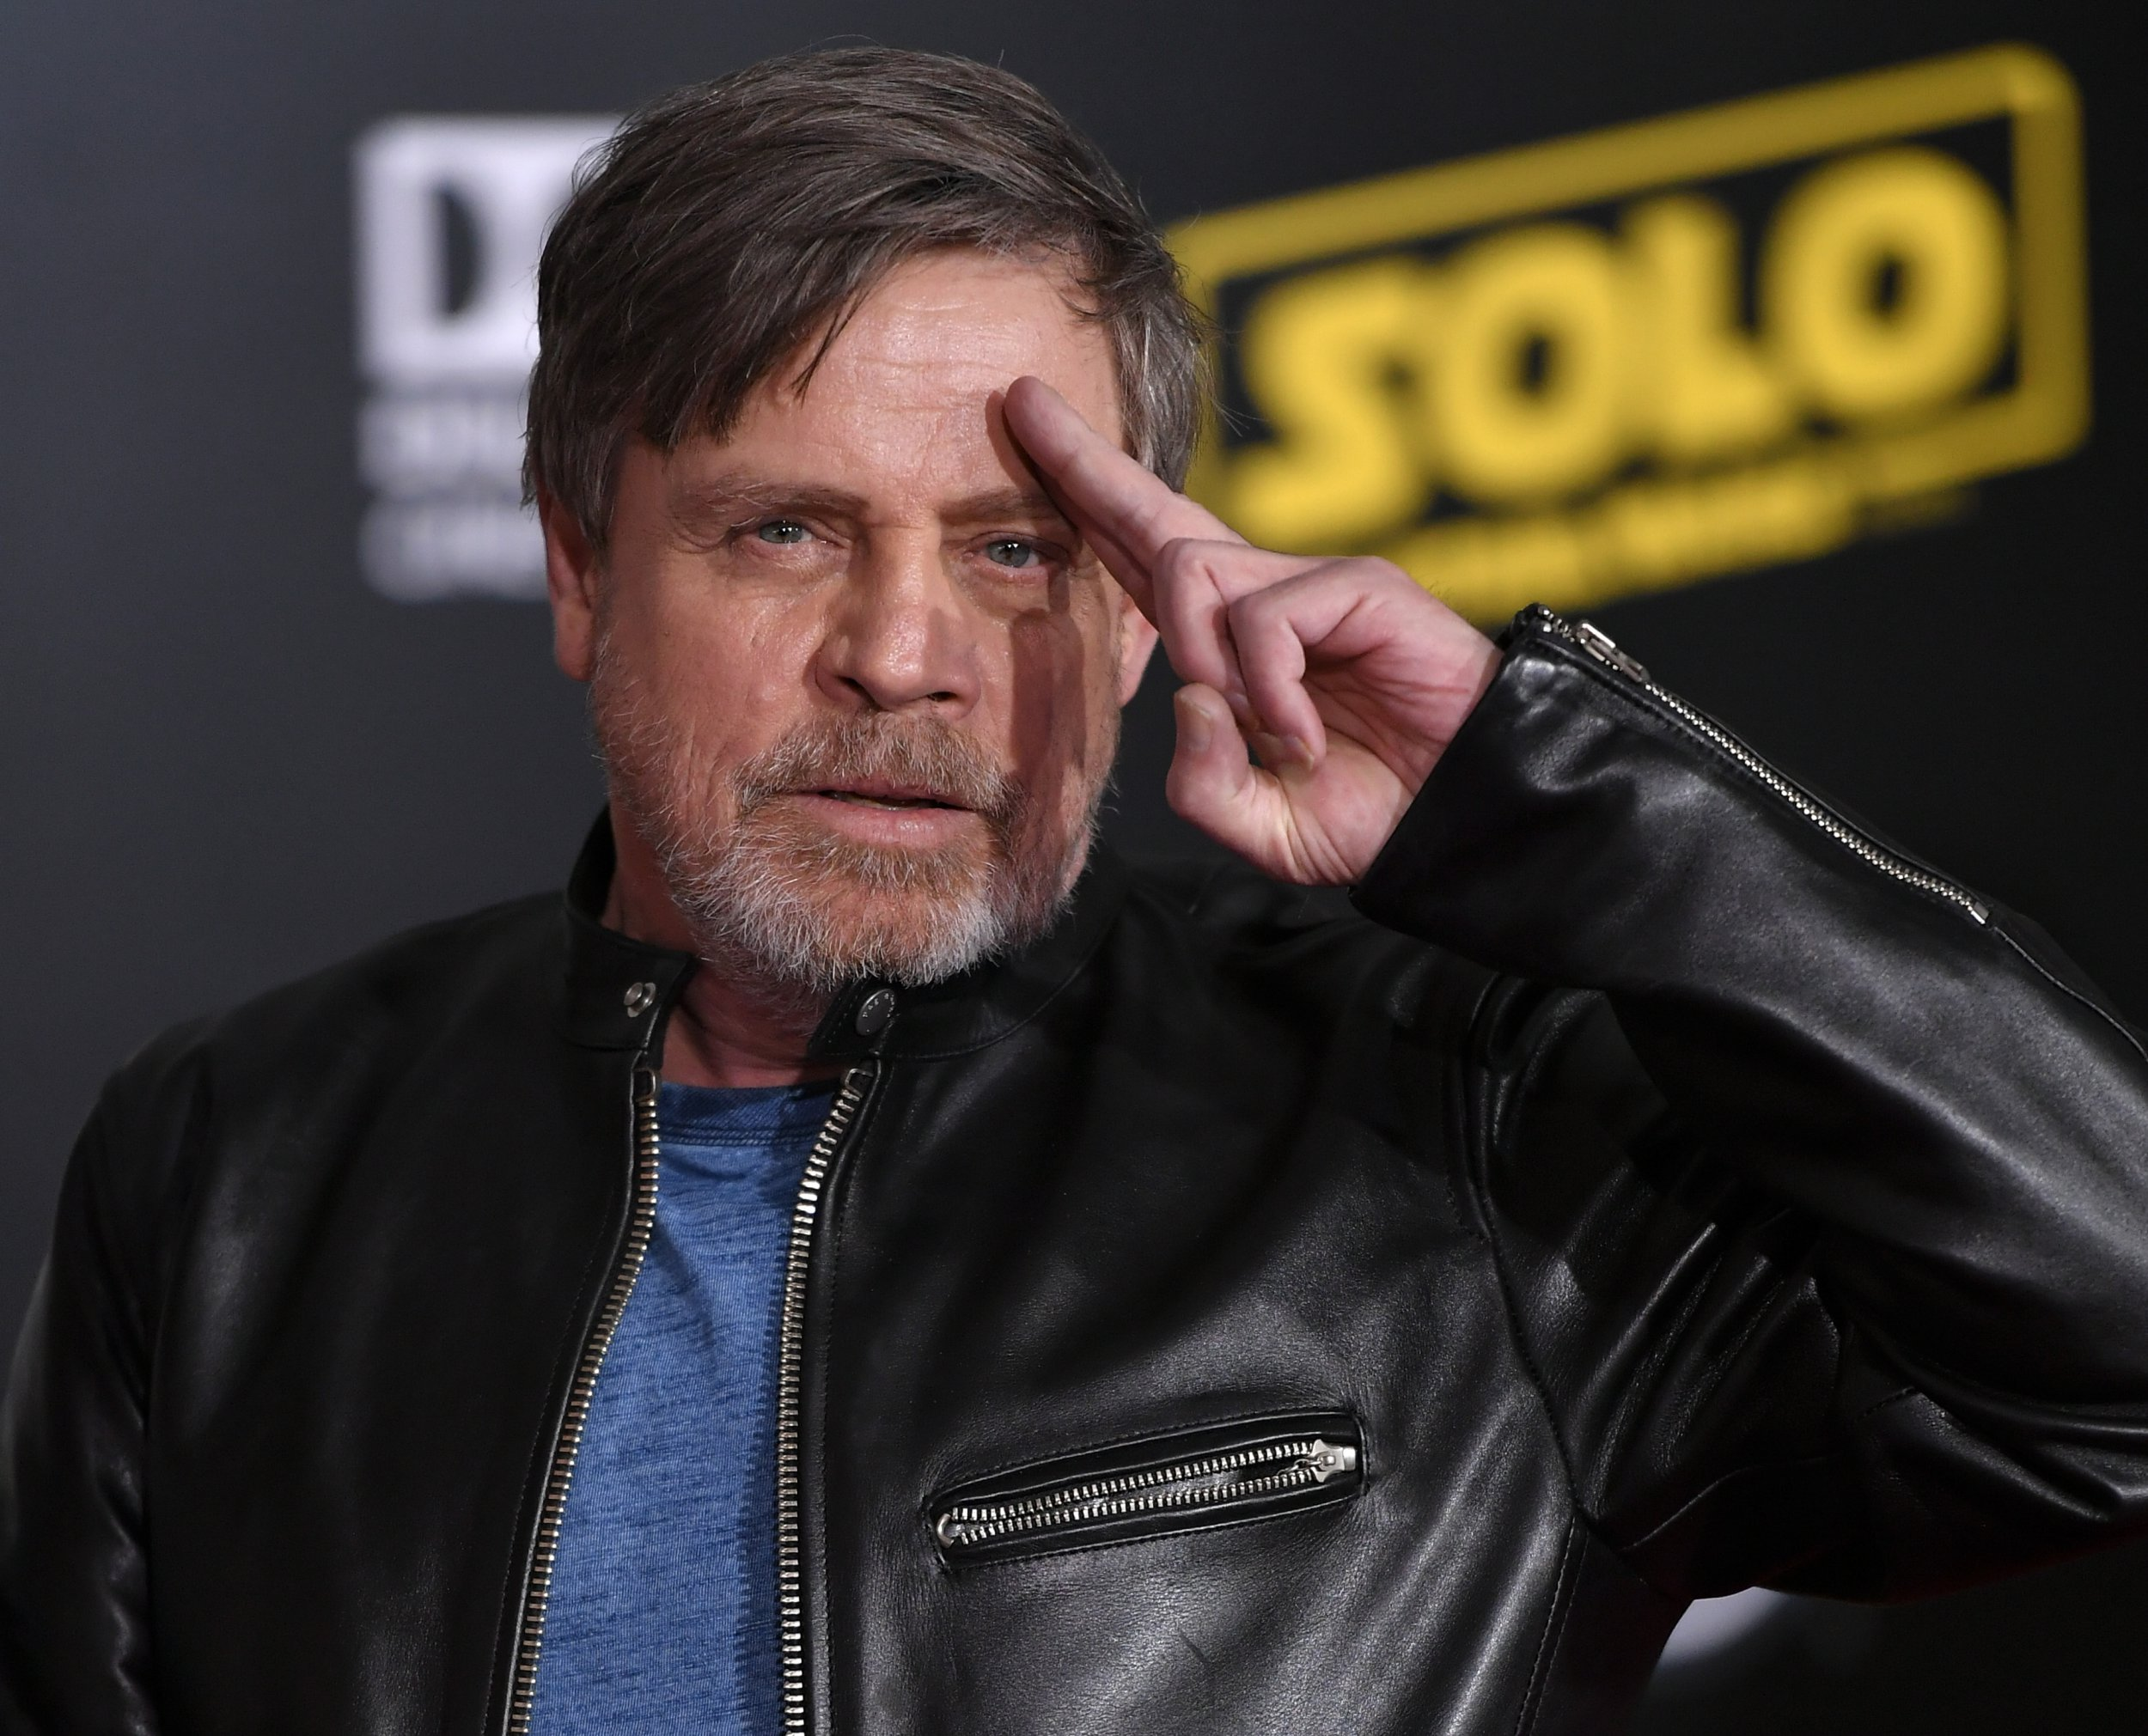 Security around Star Wars 9 is actually insane as Mark Hamill reveals crazy precautions for next saga